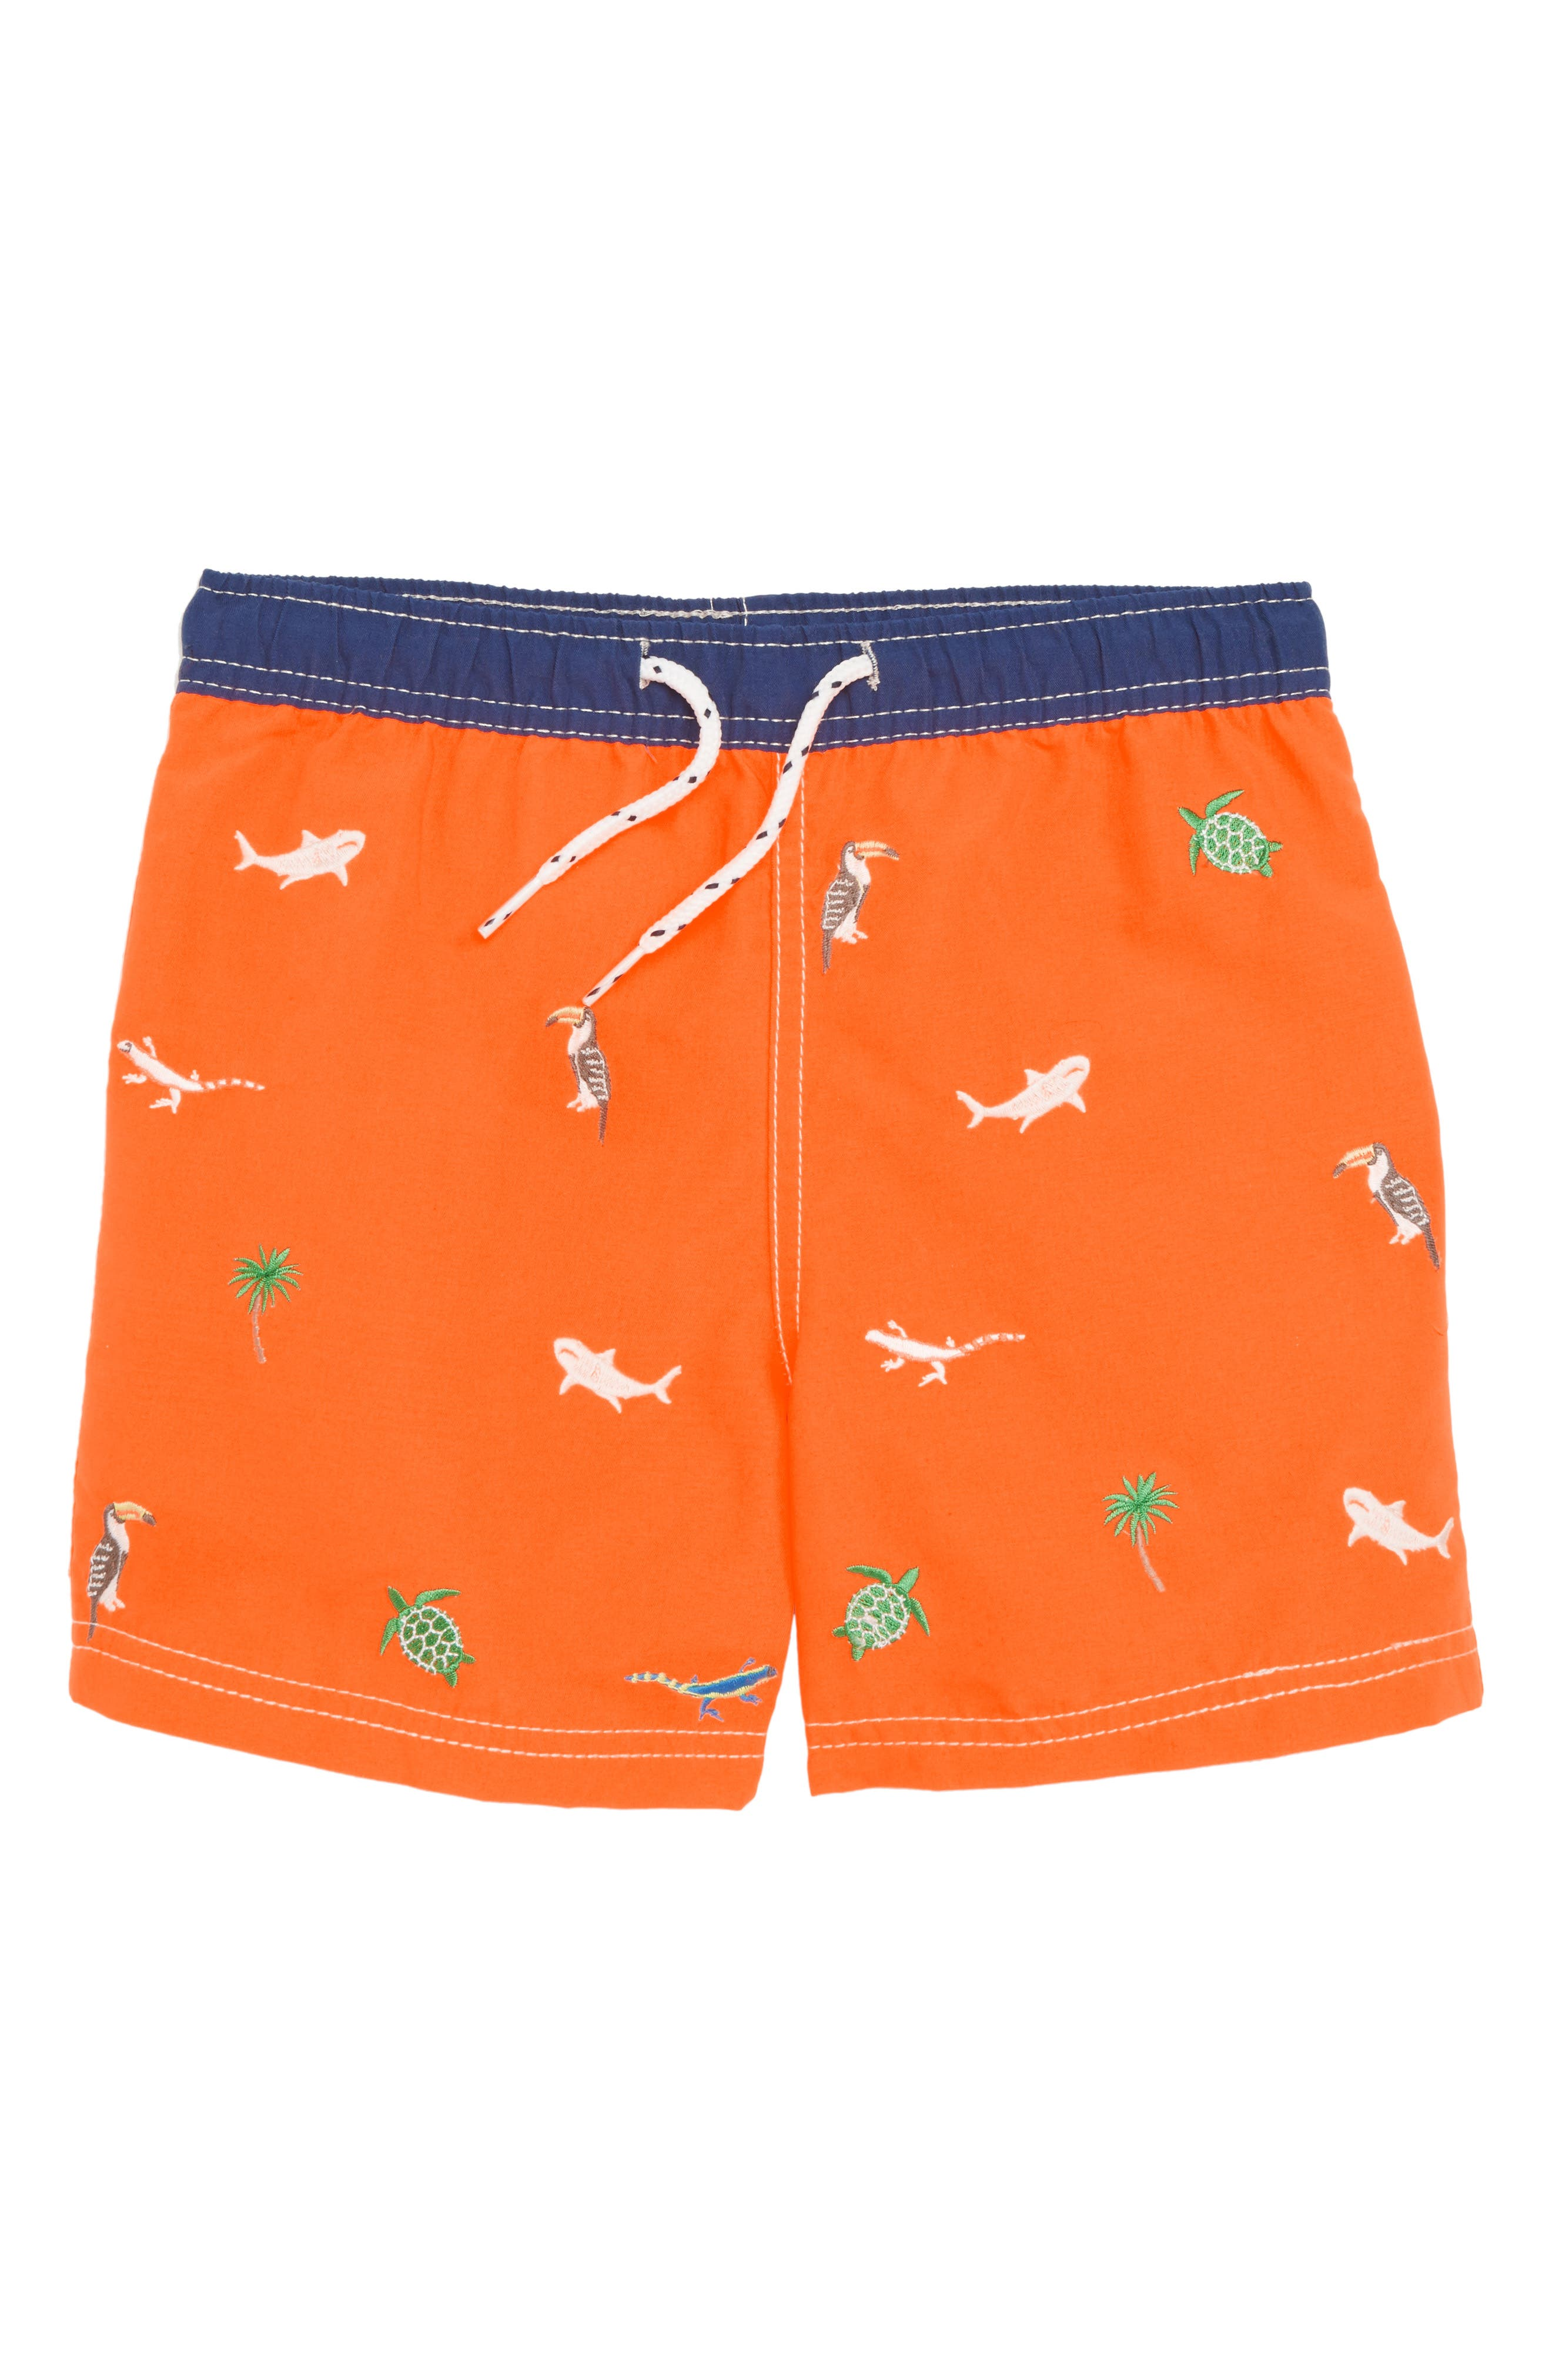 Embroidered Swim Trunks,                             Main thumbnail 1, color,                             834